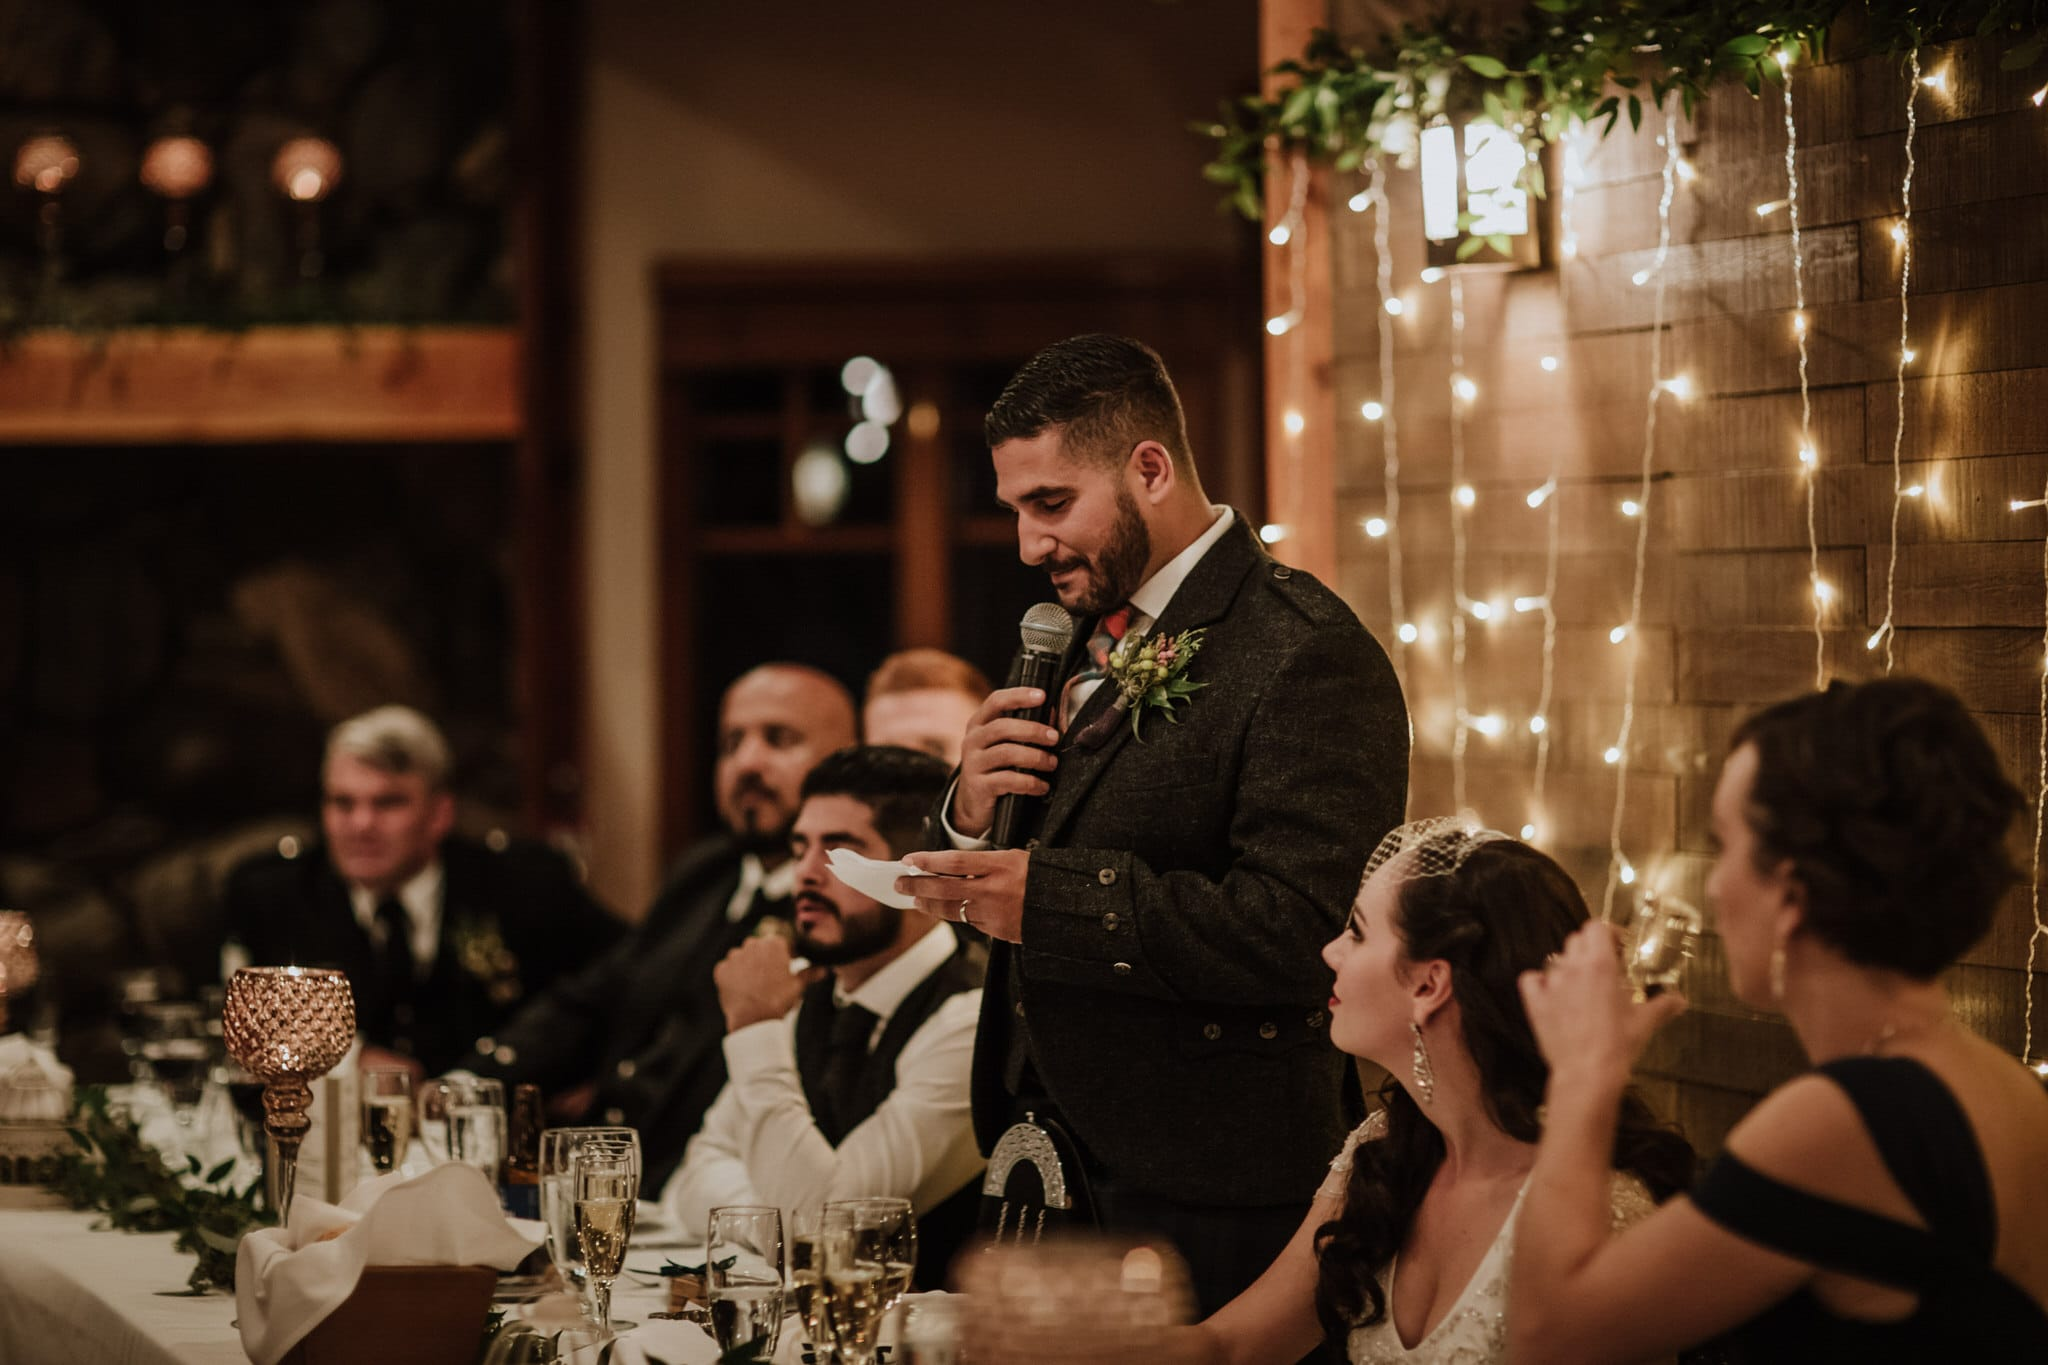 Grooms speech during wedding reception at Brew Creek Centre Whistler. Destination wedding photographer Brent Calis.